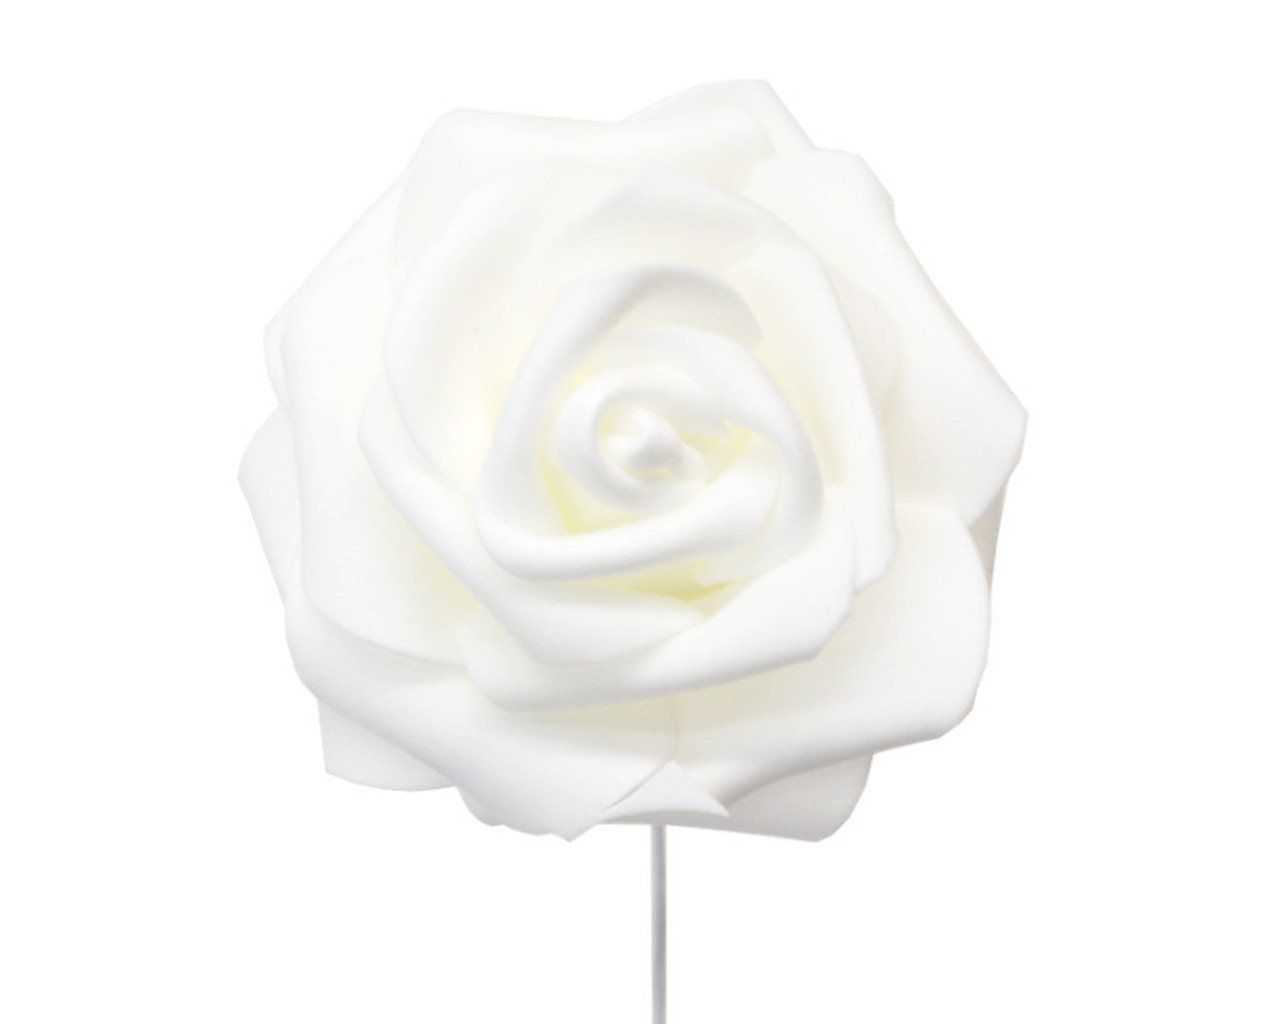 2 34 white rose foam flowers pack of 120 pieces cb flowers 2 34 white rose foam flowers pack of 120 pieces mightylinksfo